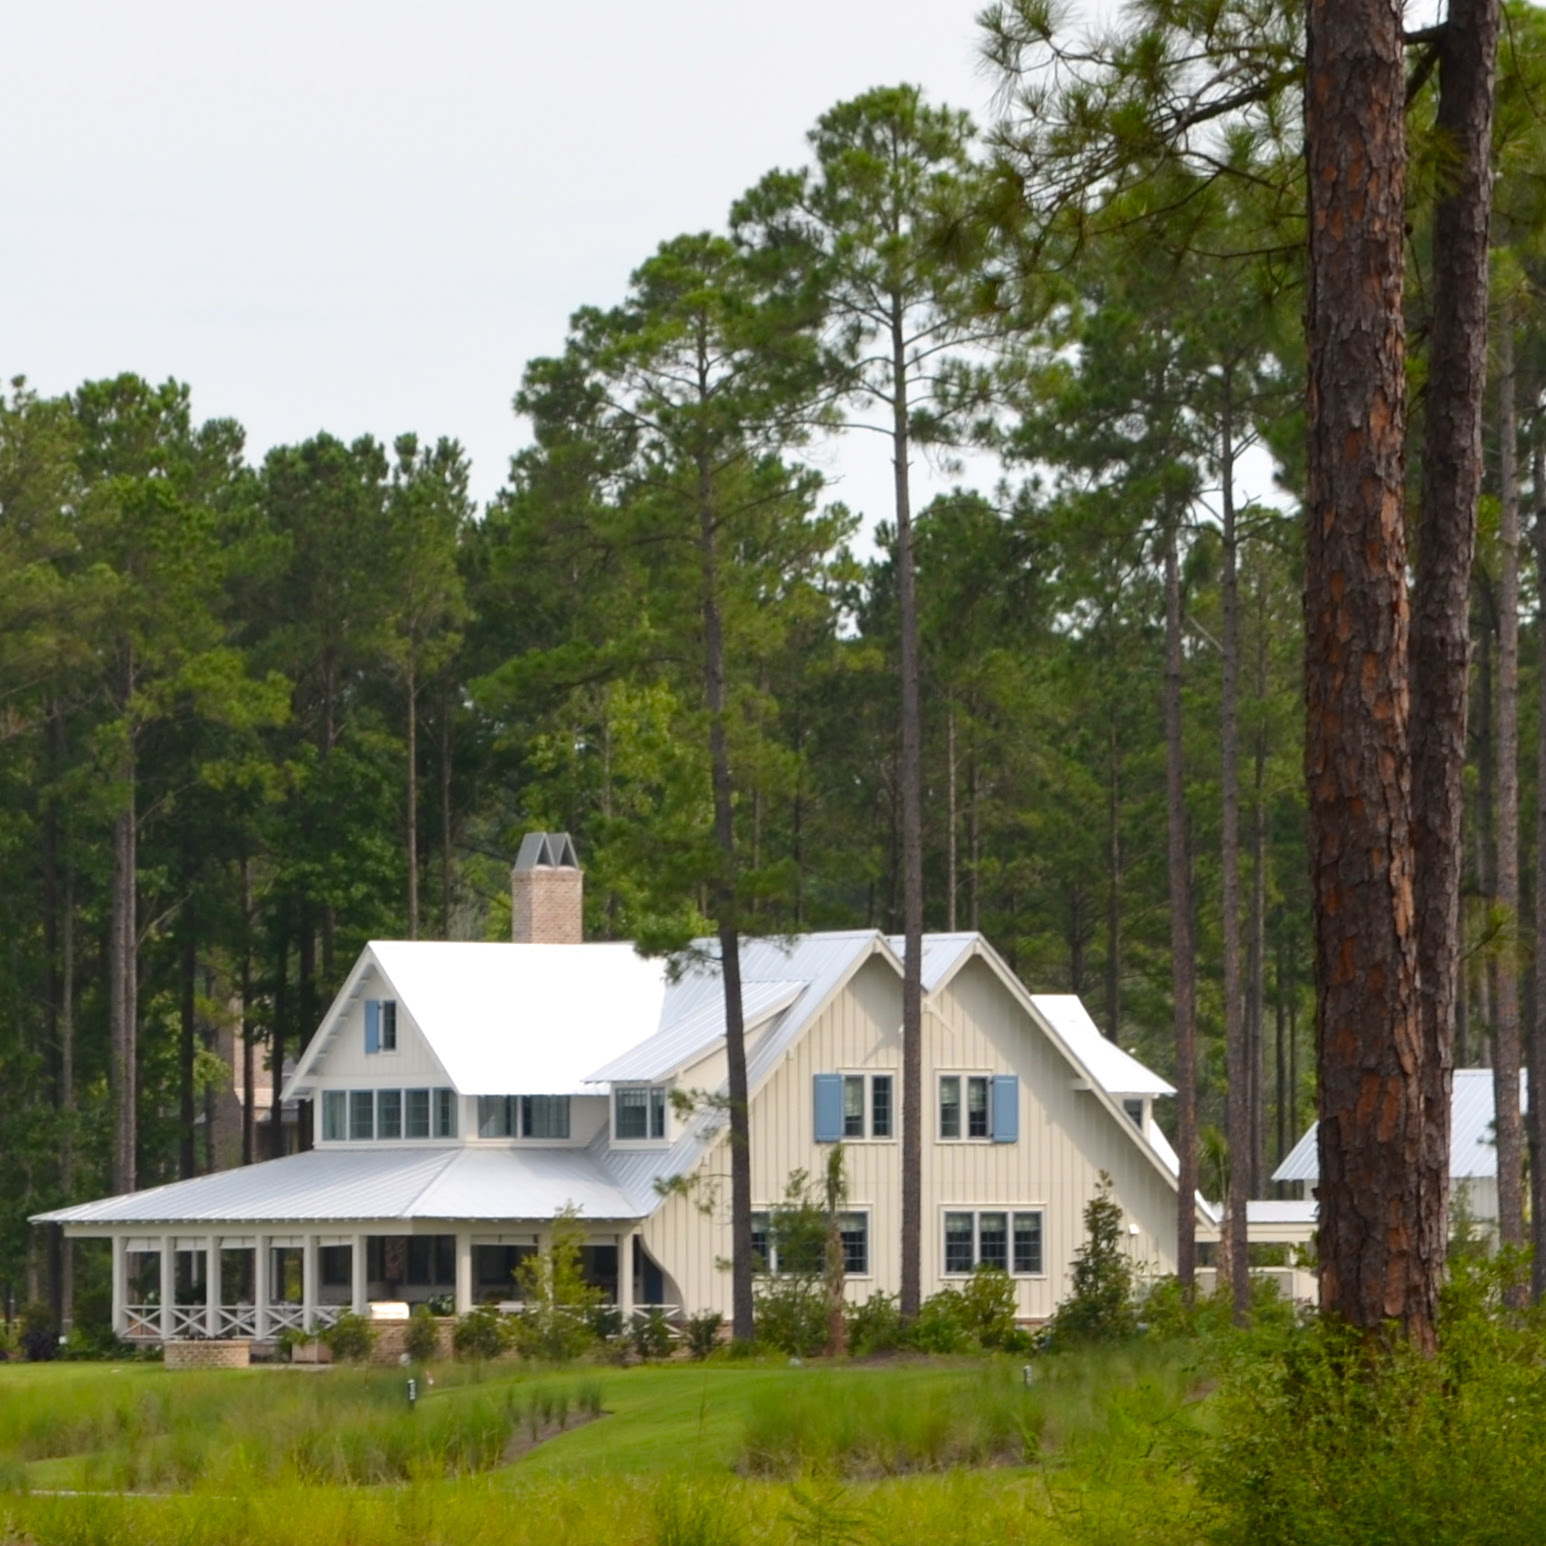 A Visit To The Southern Living Idea House After Orange County